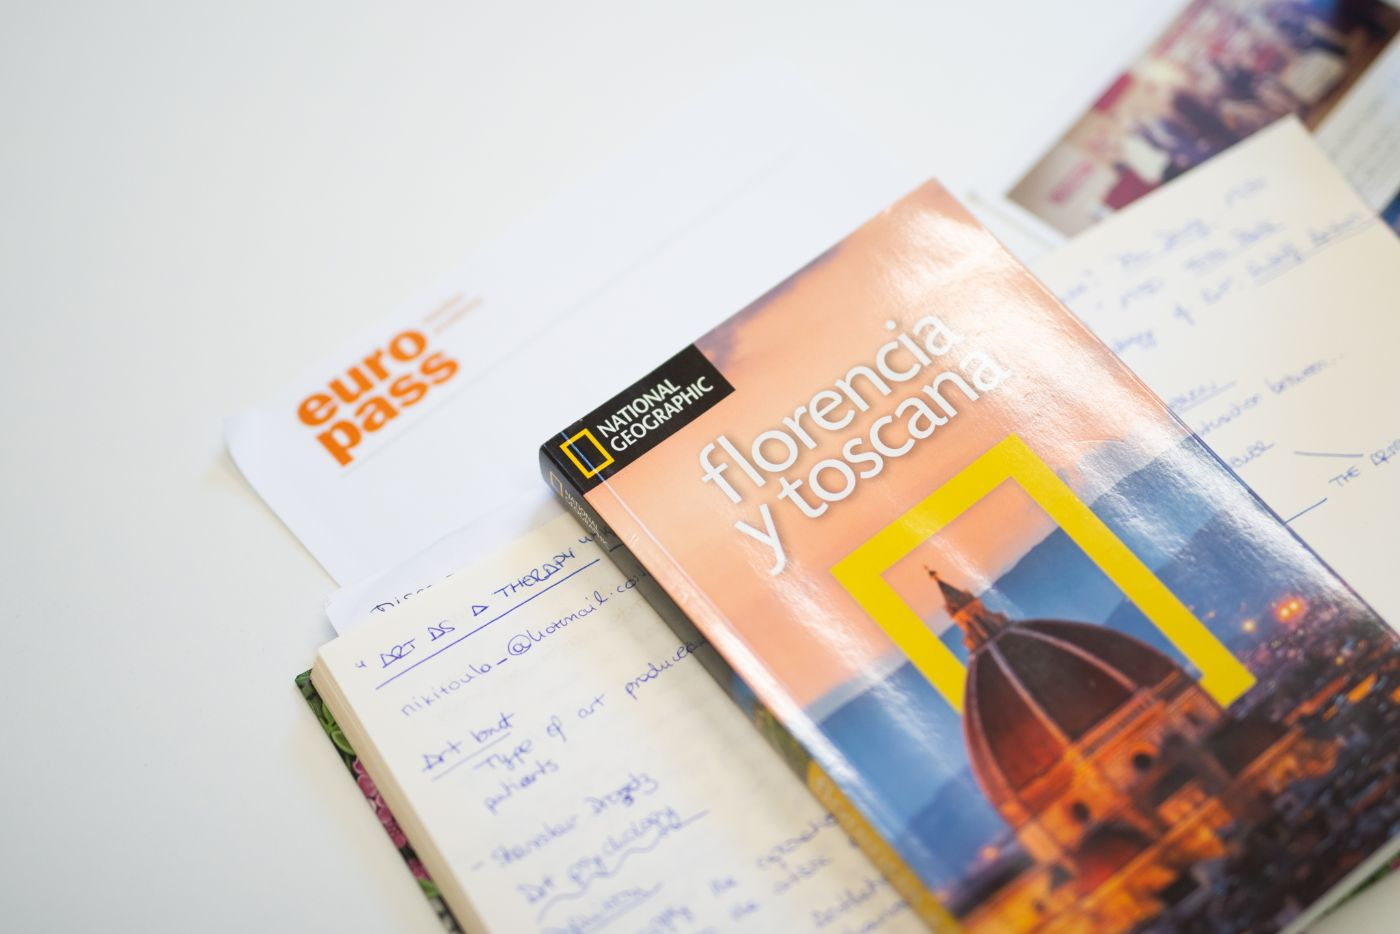 A spanish guide of Florence on the table